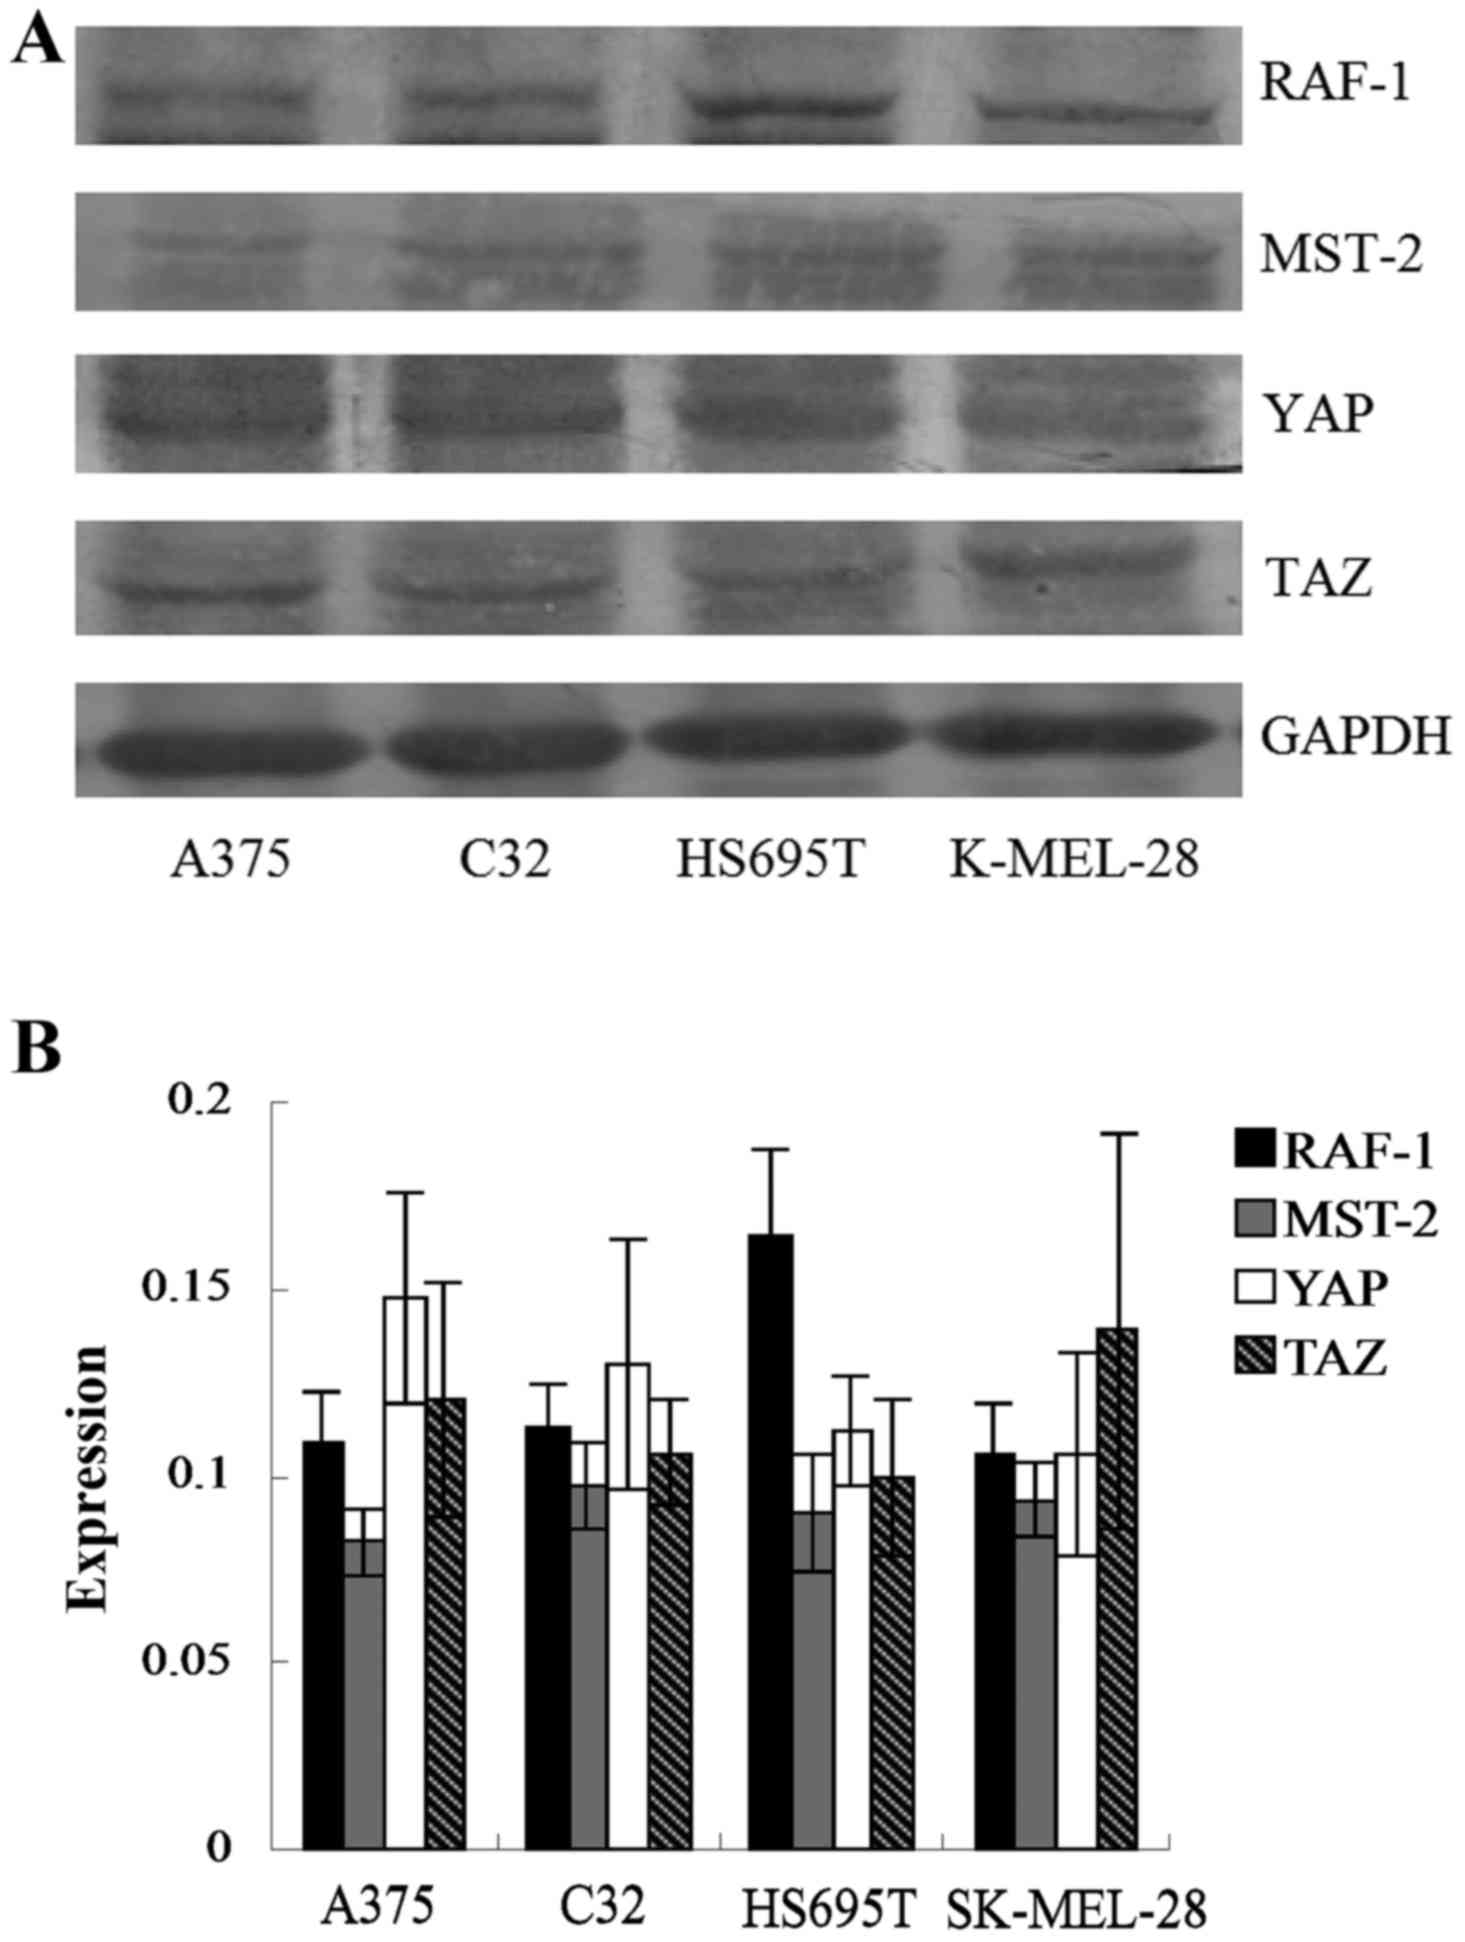 (A) Western Blotting Showing RAF 1, MST 2, YAP And TAZ Expression In Four  Human Melanoma Cell Lines. (B) Quantification Of RAF 1, MST 2, ...